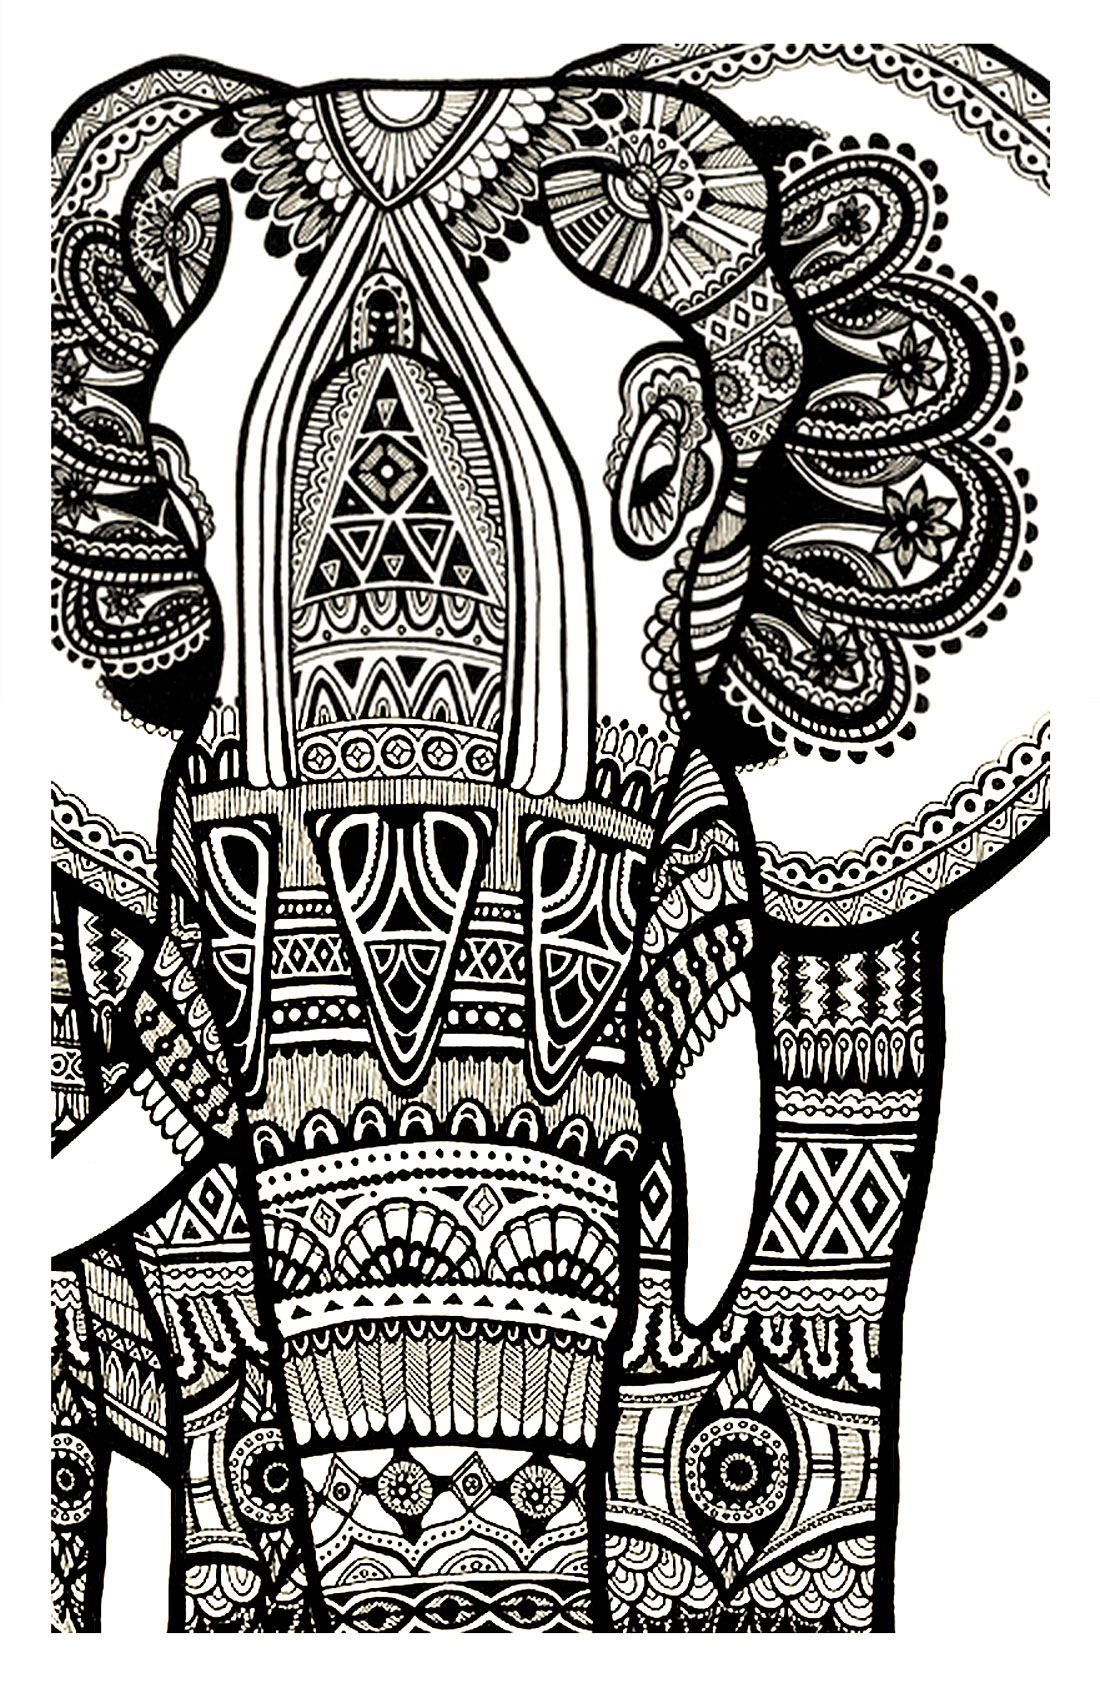 Painting pages to print - Free Coloring Page Coloring Elephant Te Print For Free A Magnificien Elephant Drawn With Zentangle Patterns From Coloring Pages For Adults